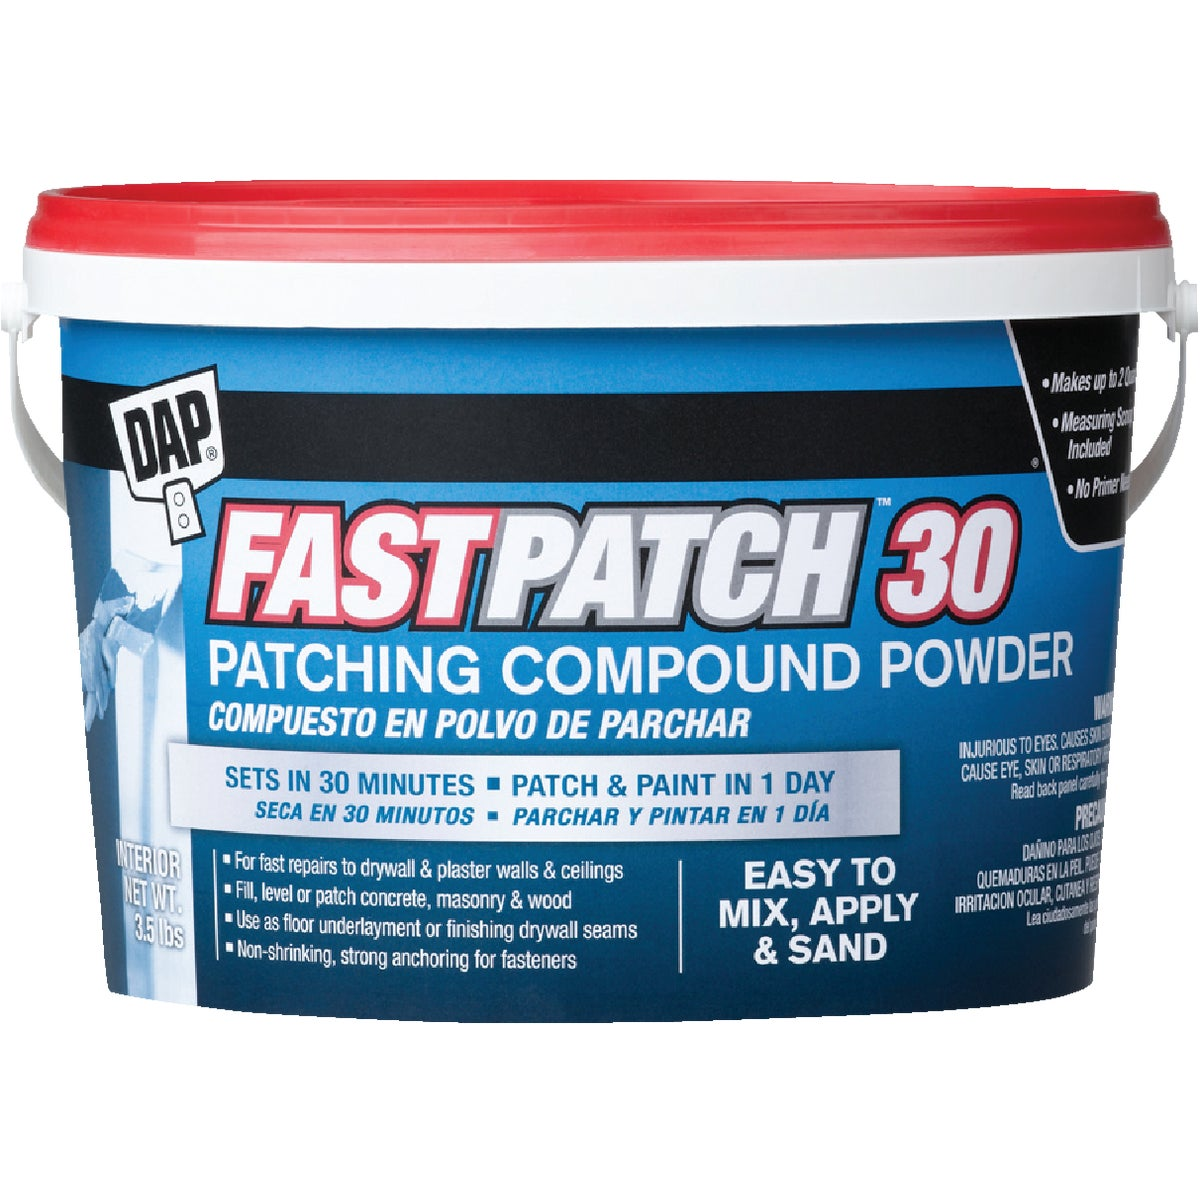 FASTPATCH COMPND POWDER - 58550 by Dap Inc